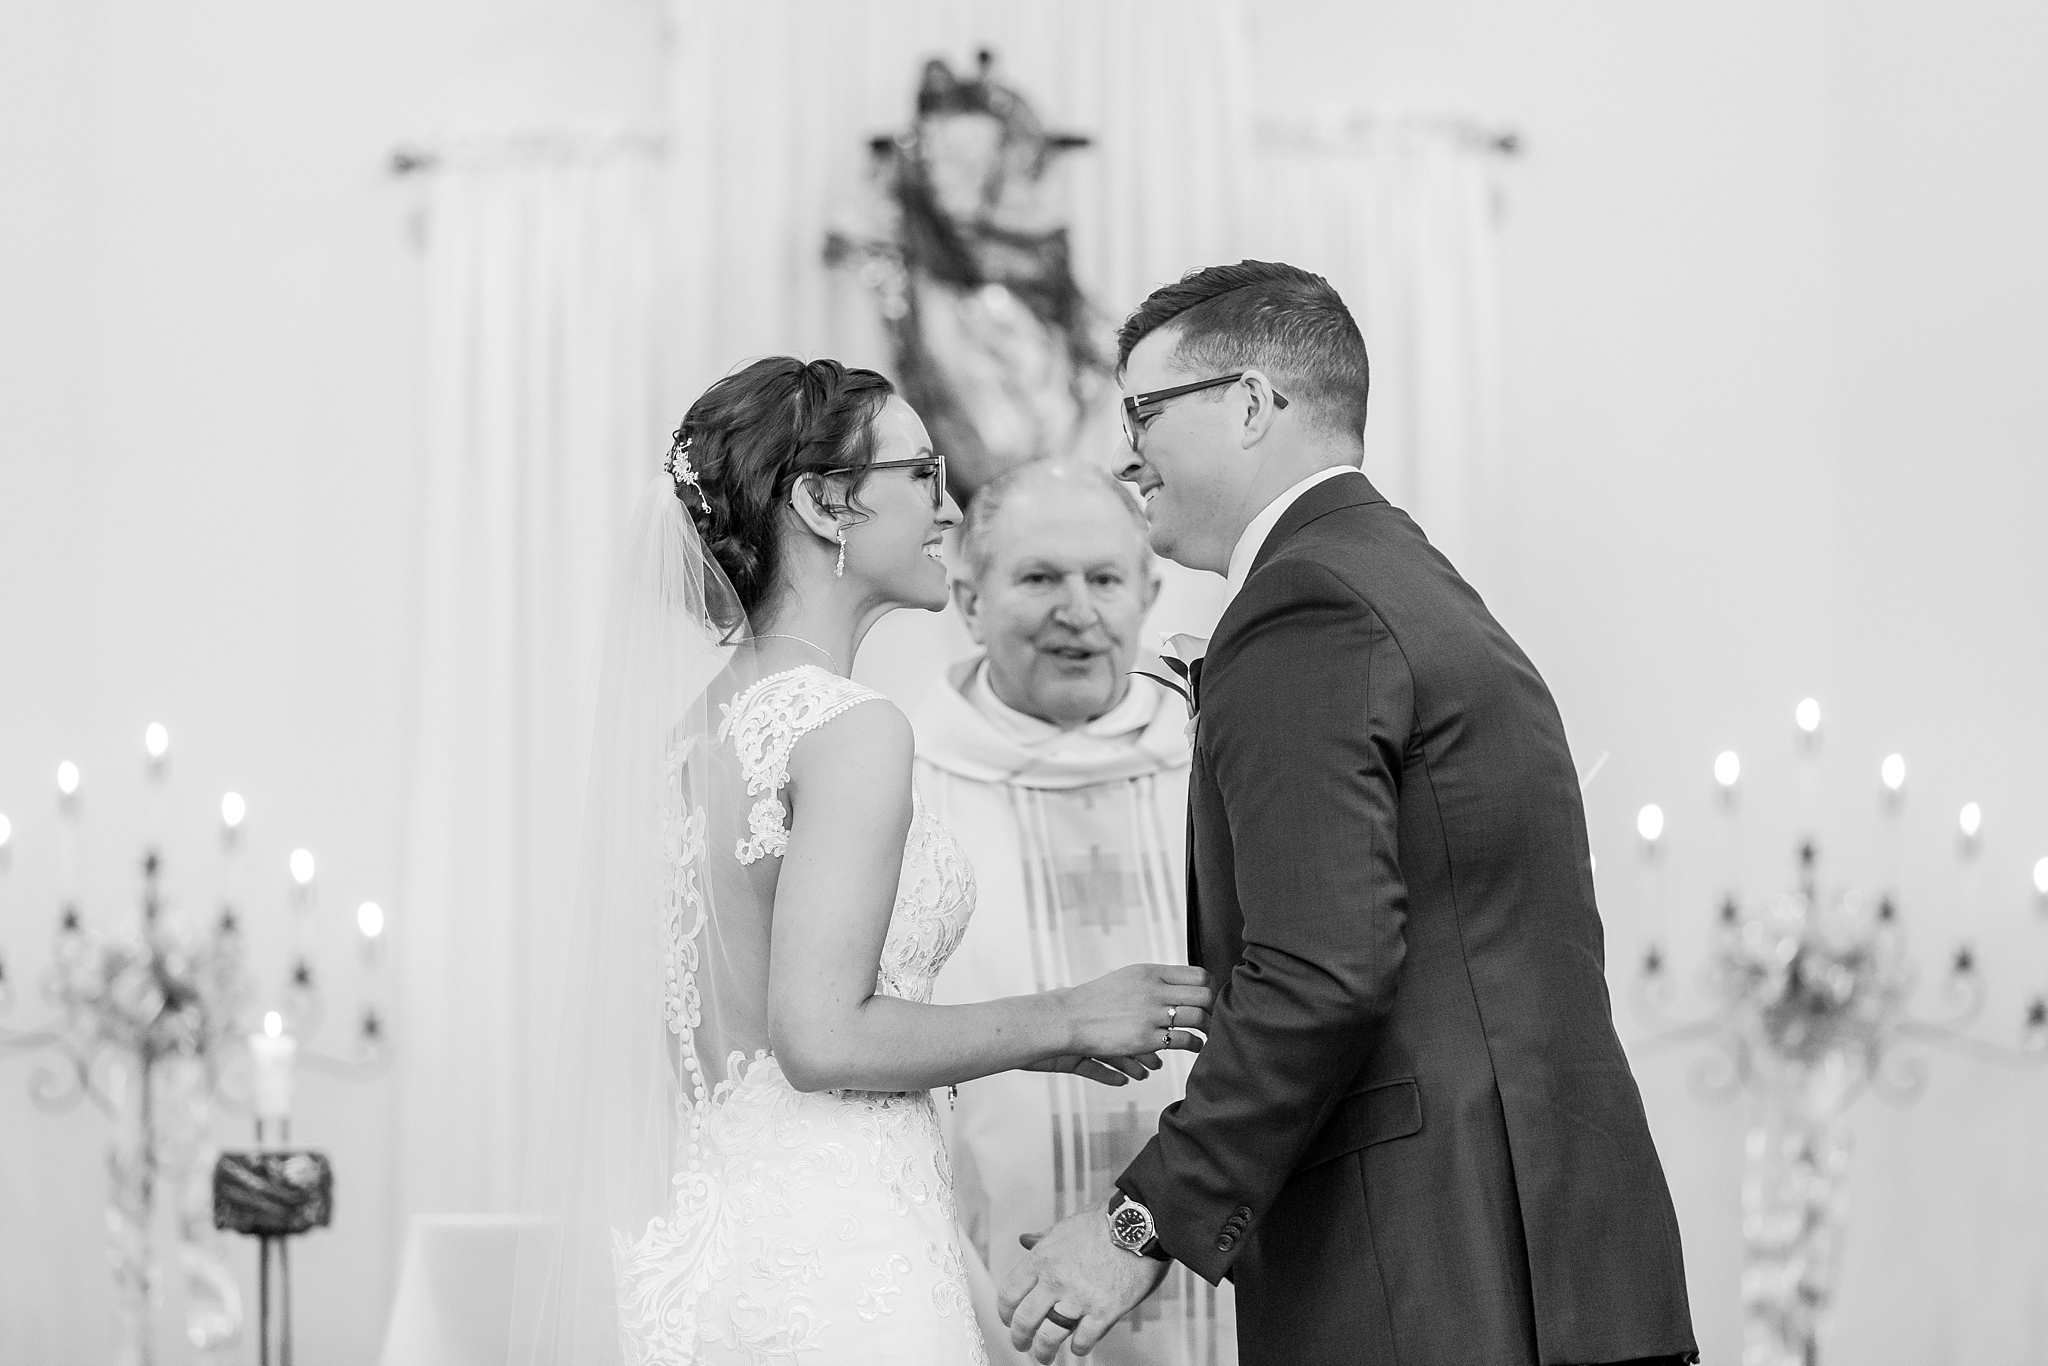 classic-timeless-candid-wedding-photos-in-grosse-ile-and-trenton-michigan-by-courtney-carolyn-photography_0026.jpg